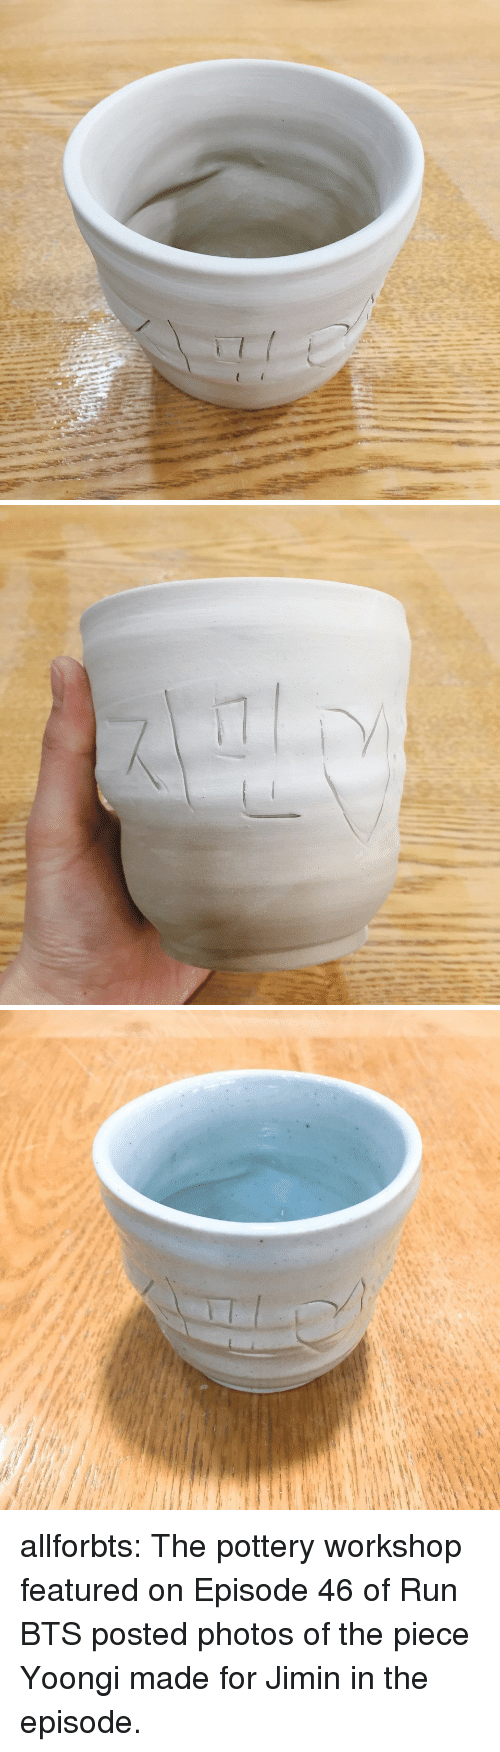 Run Bts: allforbts:  The pottery workshop featured on Episode 46 of Run BTS posted photos of the piece Yoongi made for Jimin in the episode.